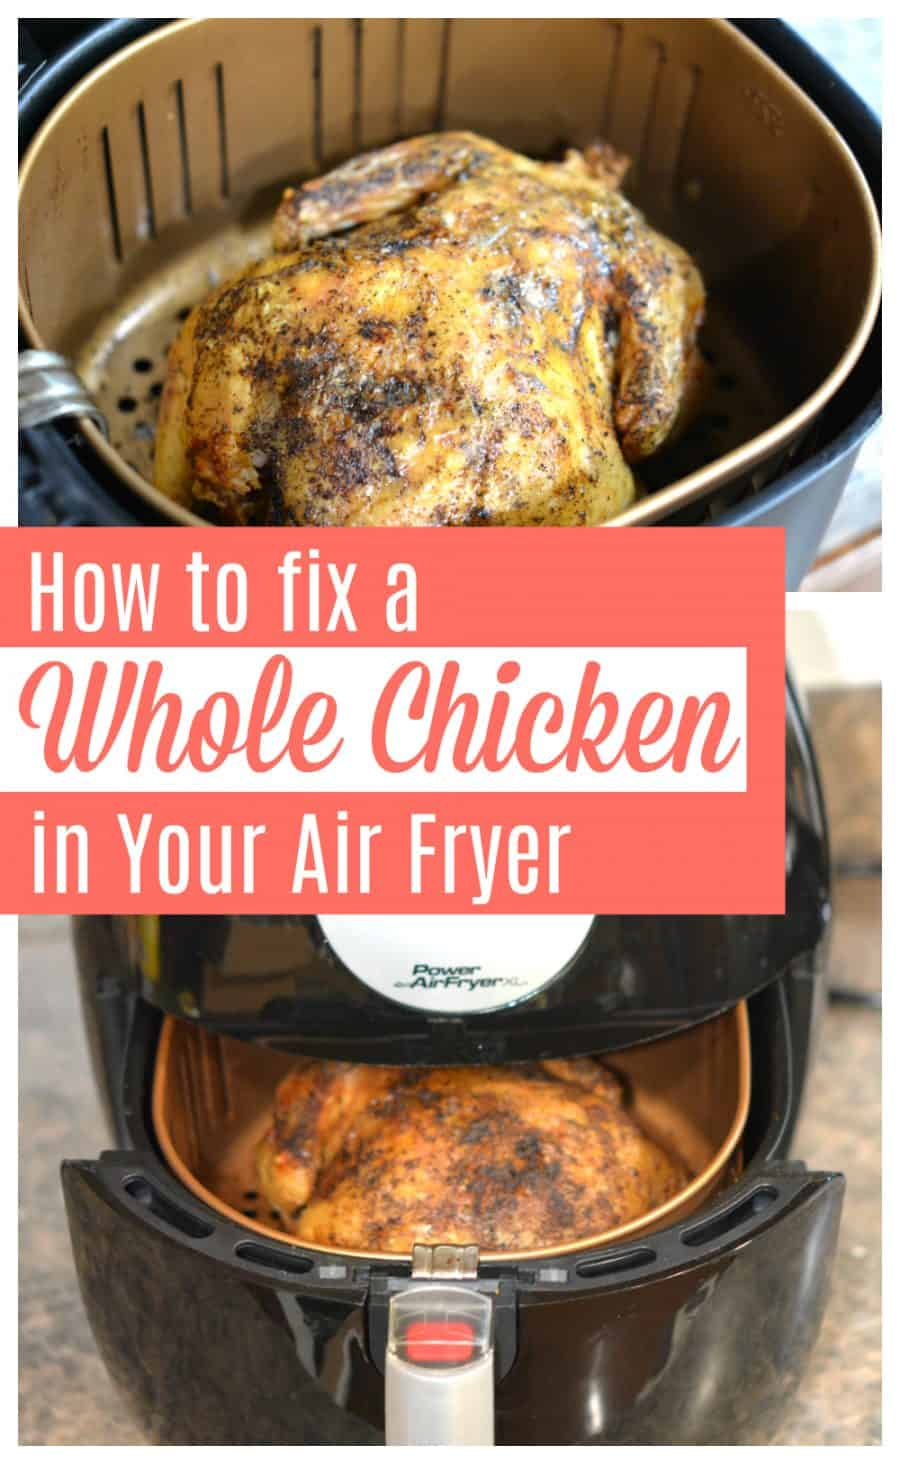 How to fix a whole chicken in your air fryer